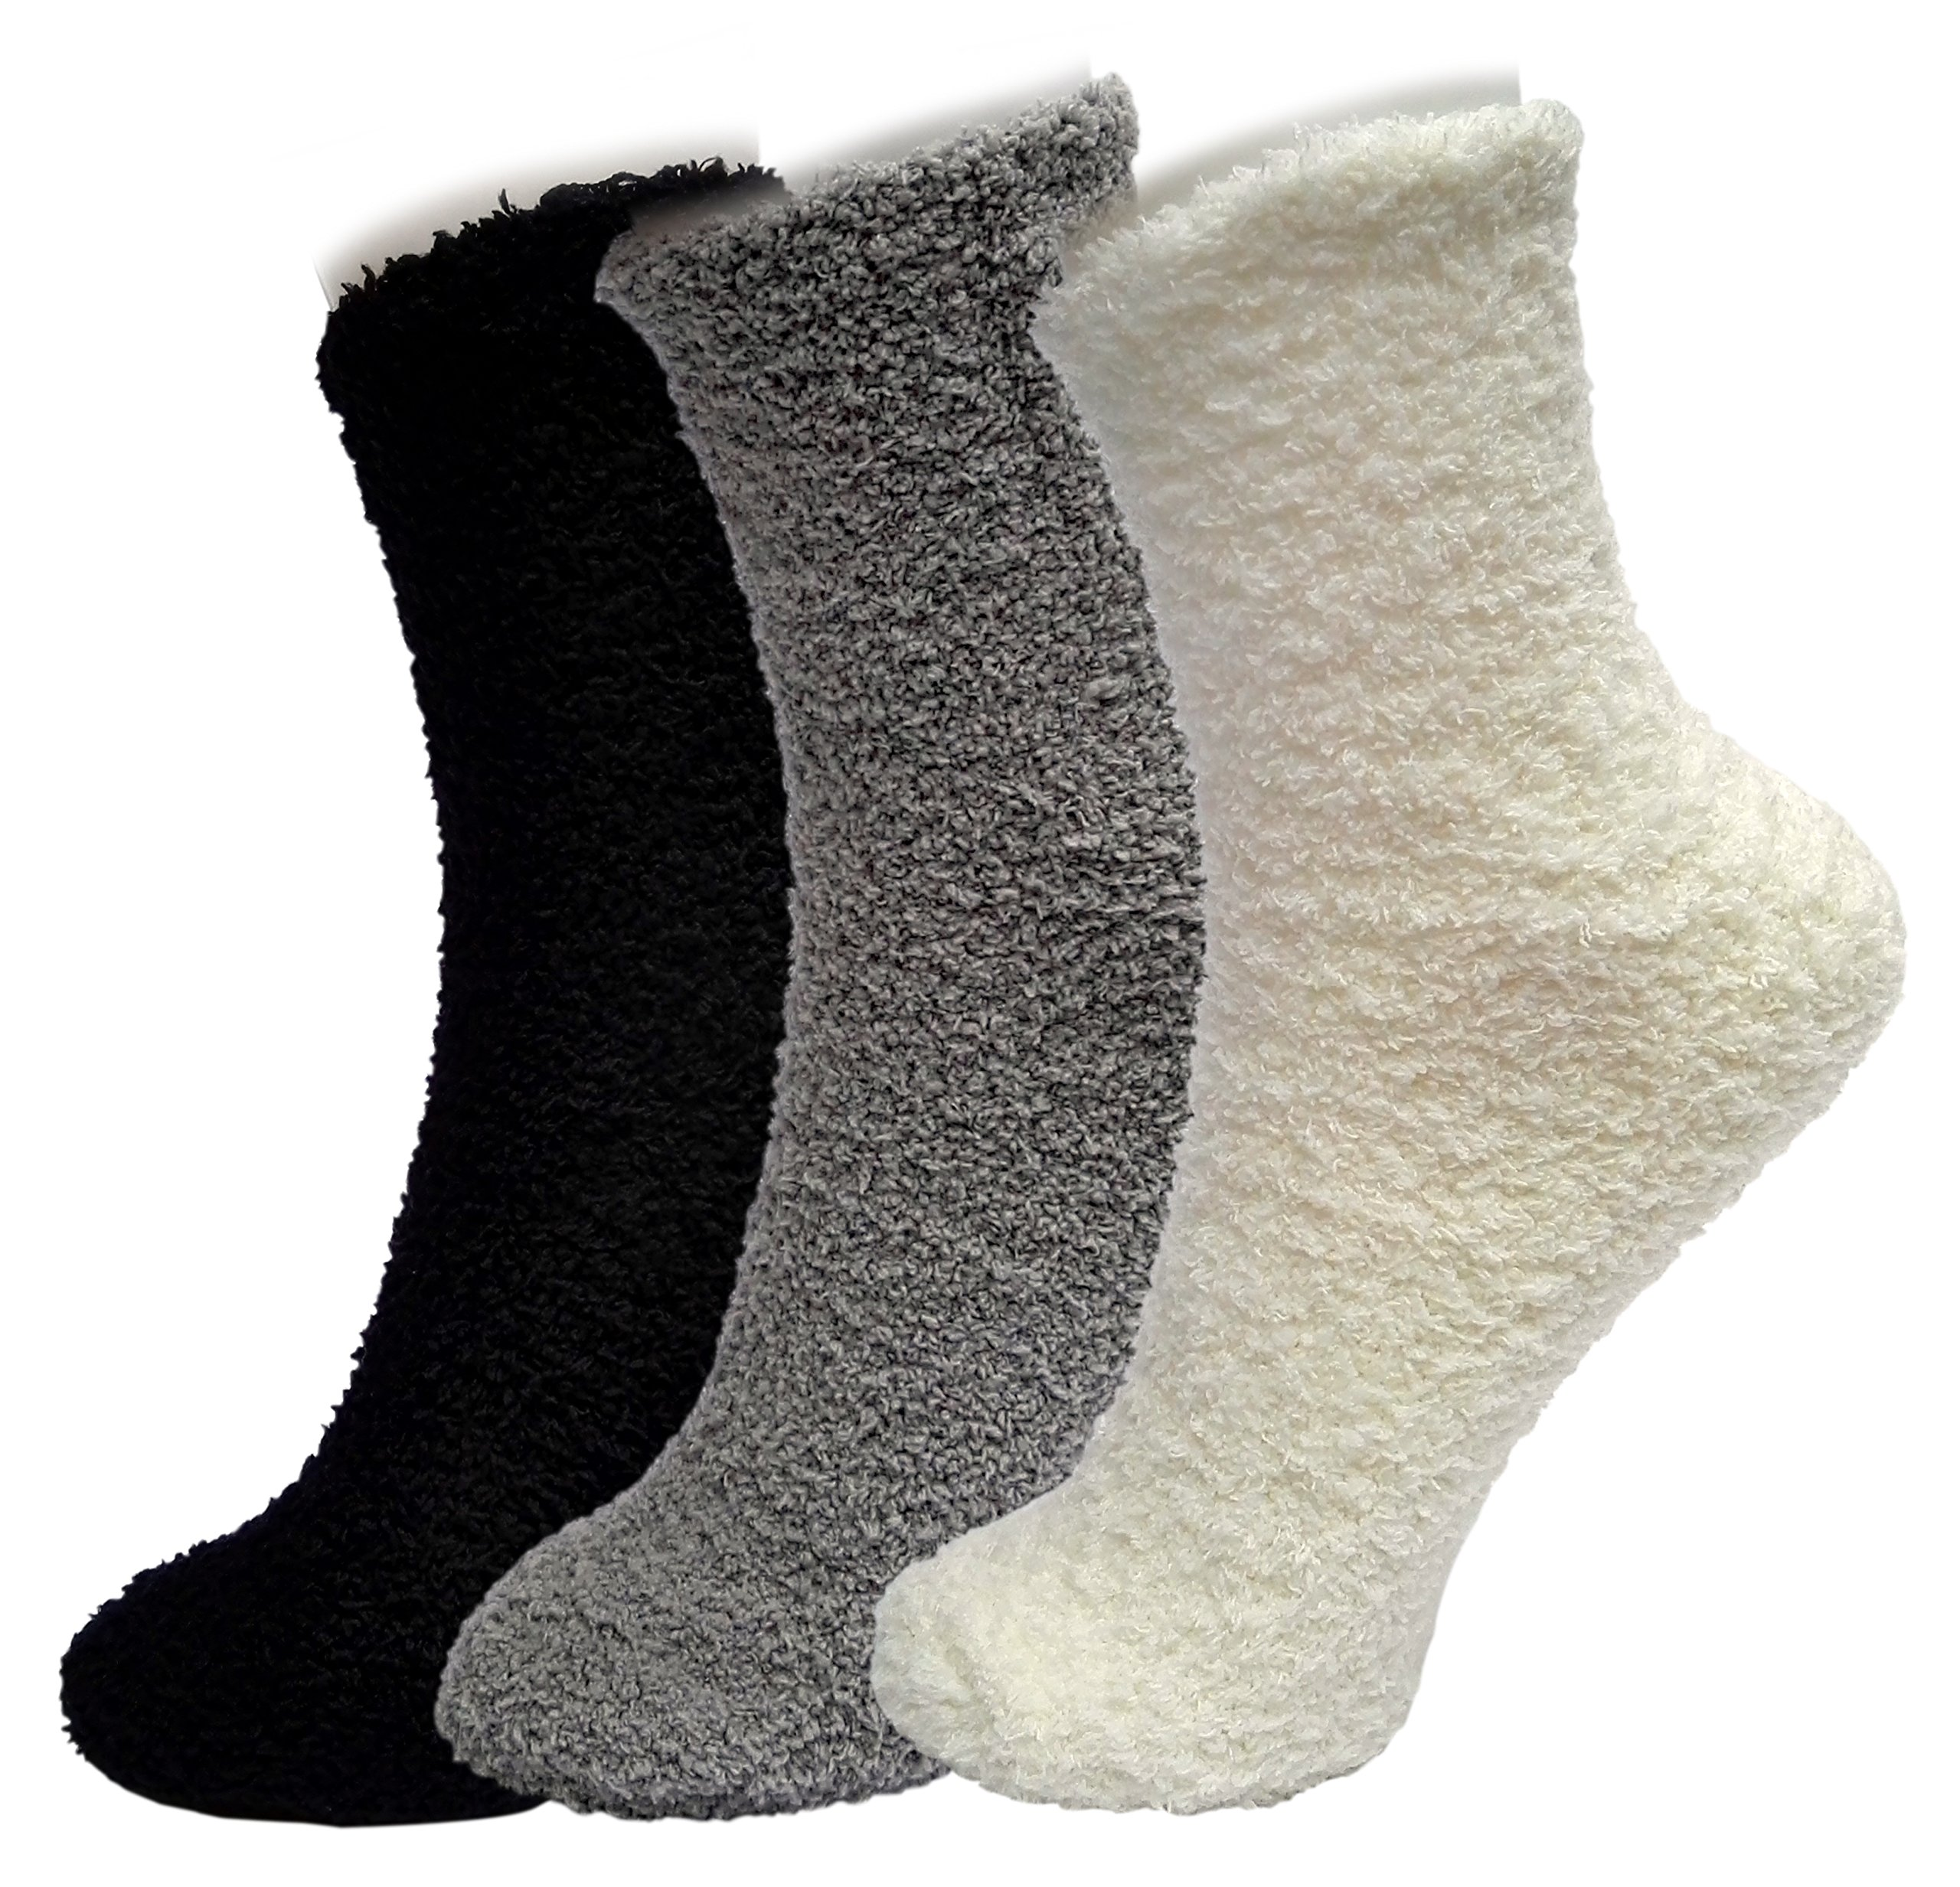 ELLITE Styles Premium Soft Warm Microfiber Crew Socks, 3 pair ,white, grey, black ,Soild, One Size(Fits Shoe Size: 6-9 & Sock Size: 9-11)